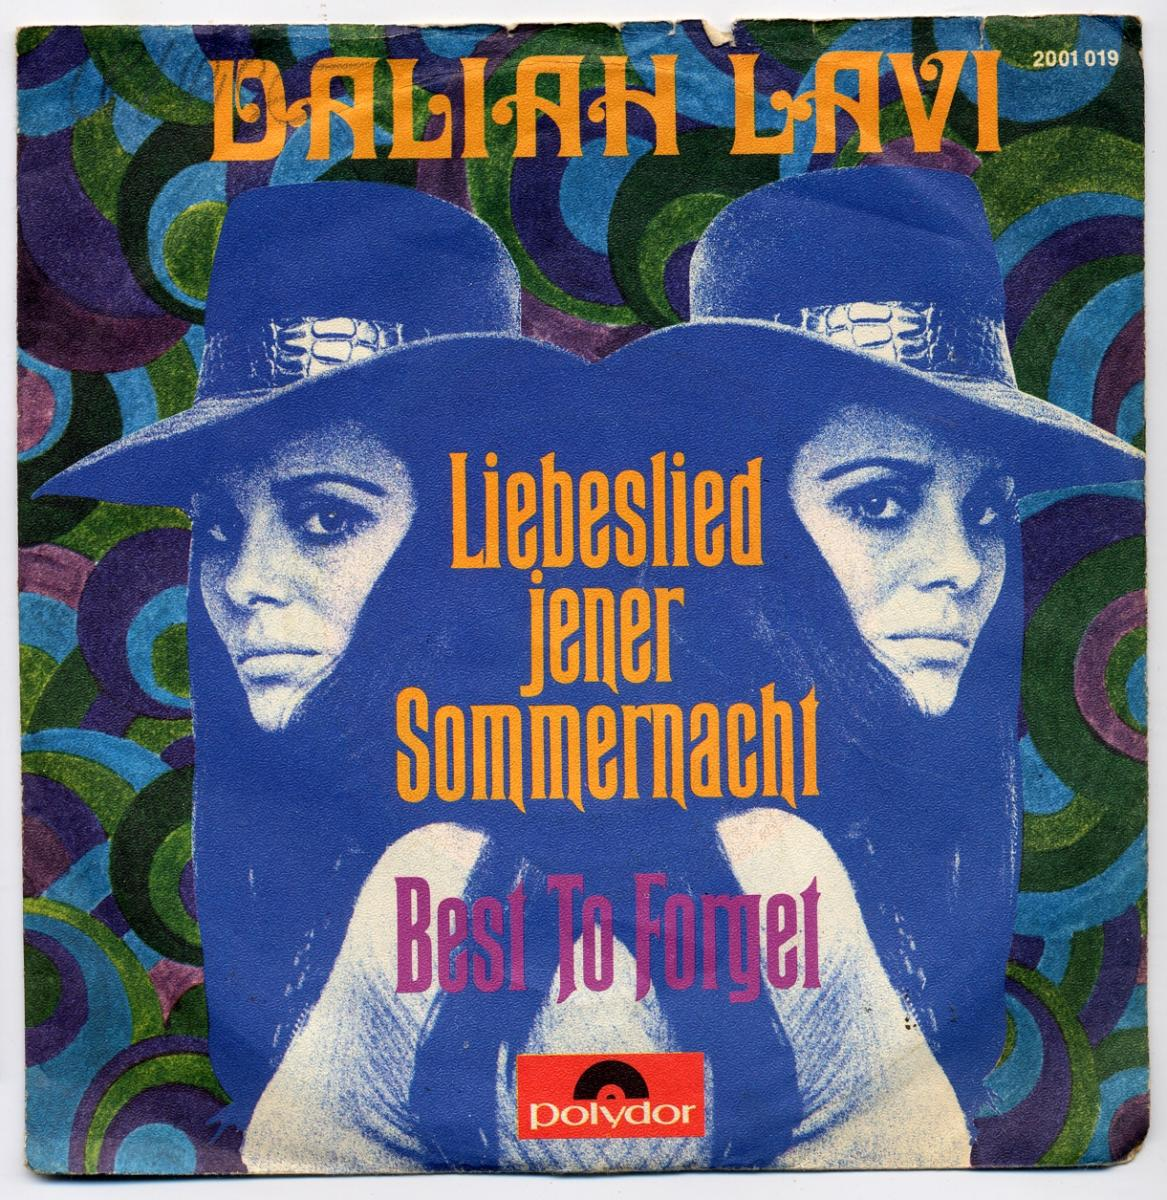 Vinyl-Single: <b><br>Daliah Lavi: <br>Liebeslied jener Sommernacht / Best To Forget </b><br>Polydor 2001 019, (P) 1970